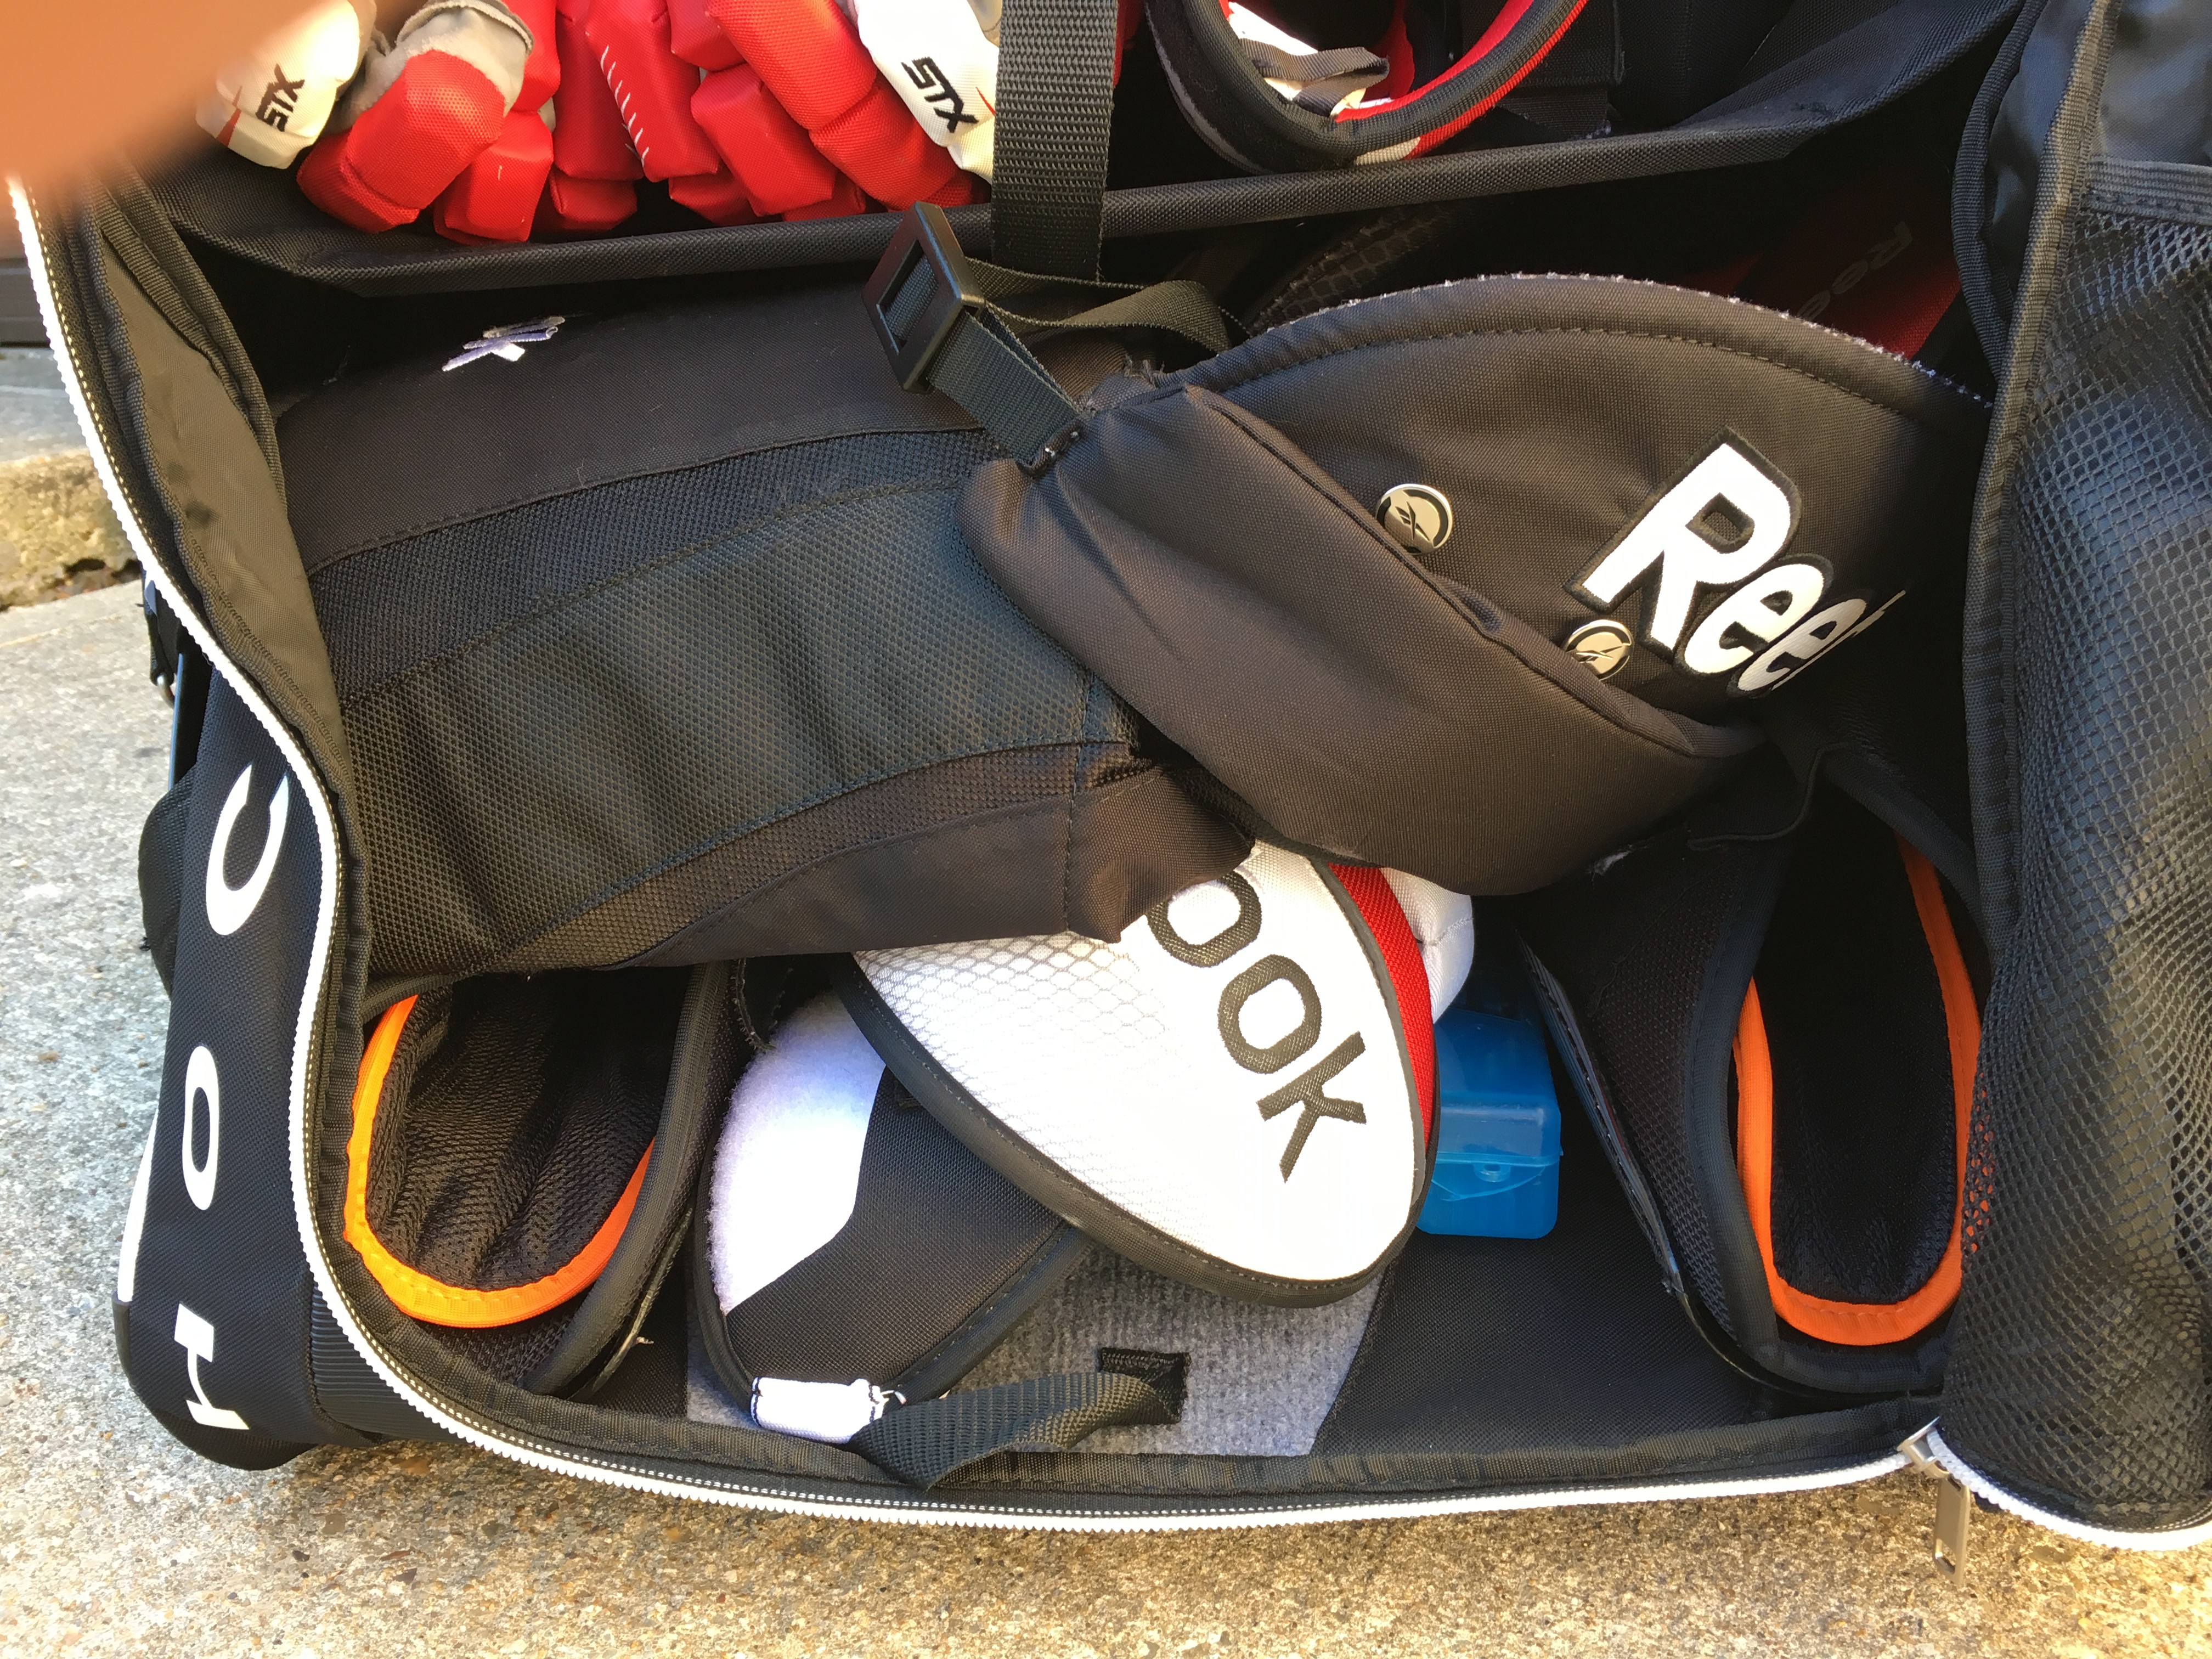 Grit HTSE Tower Hockey bag review9162